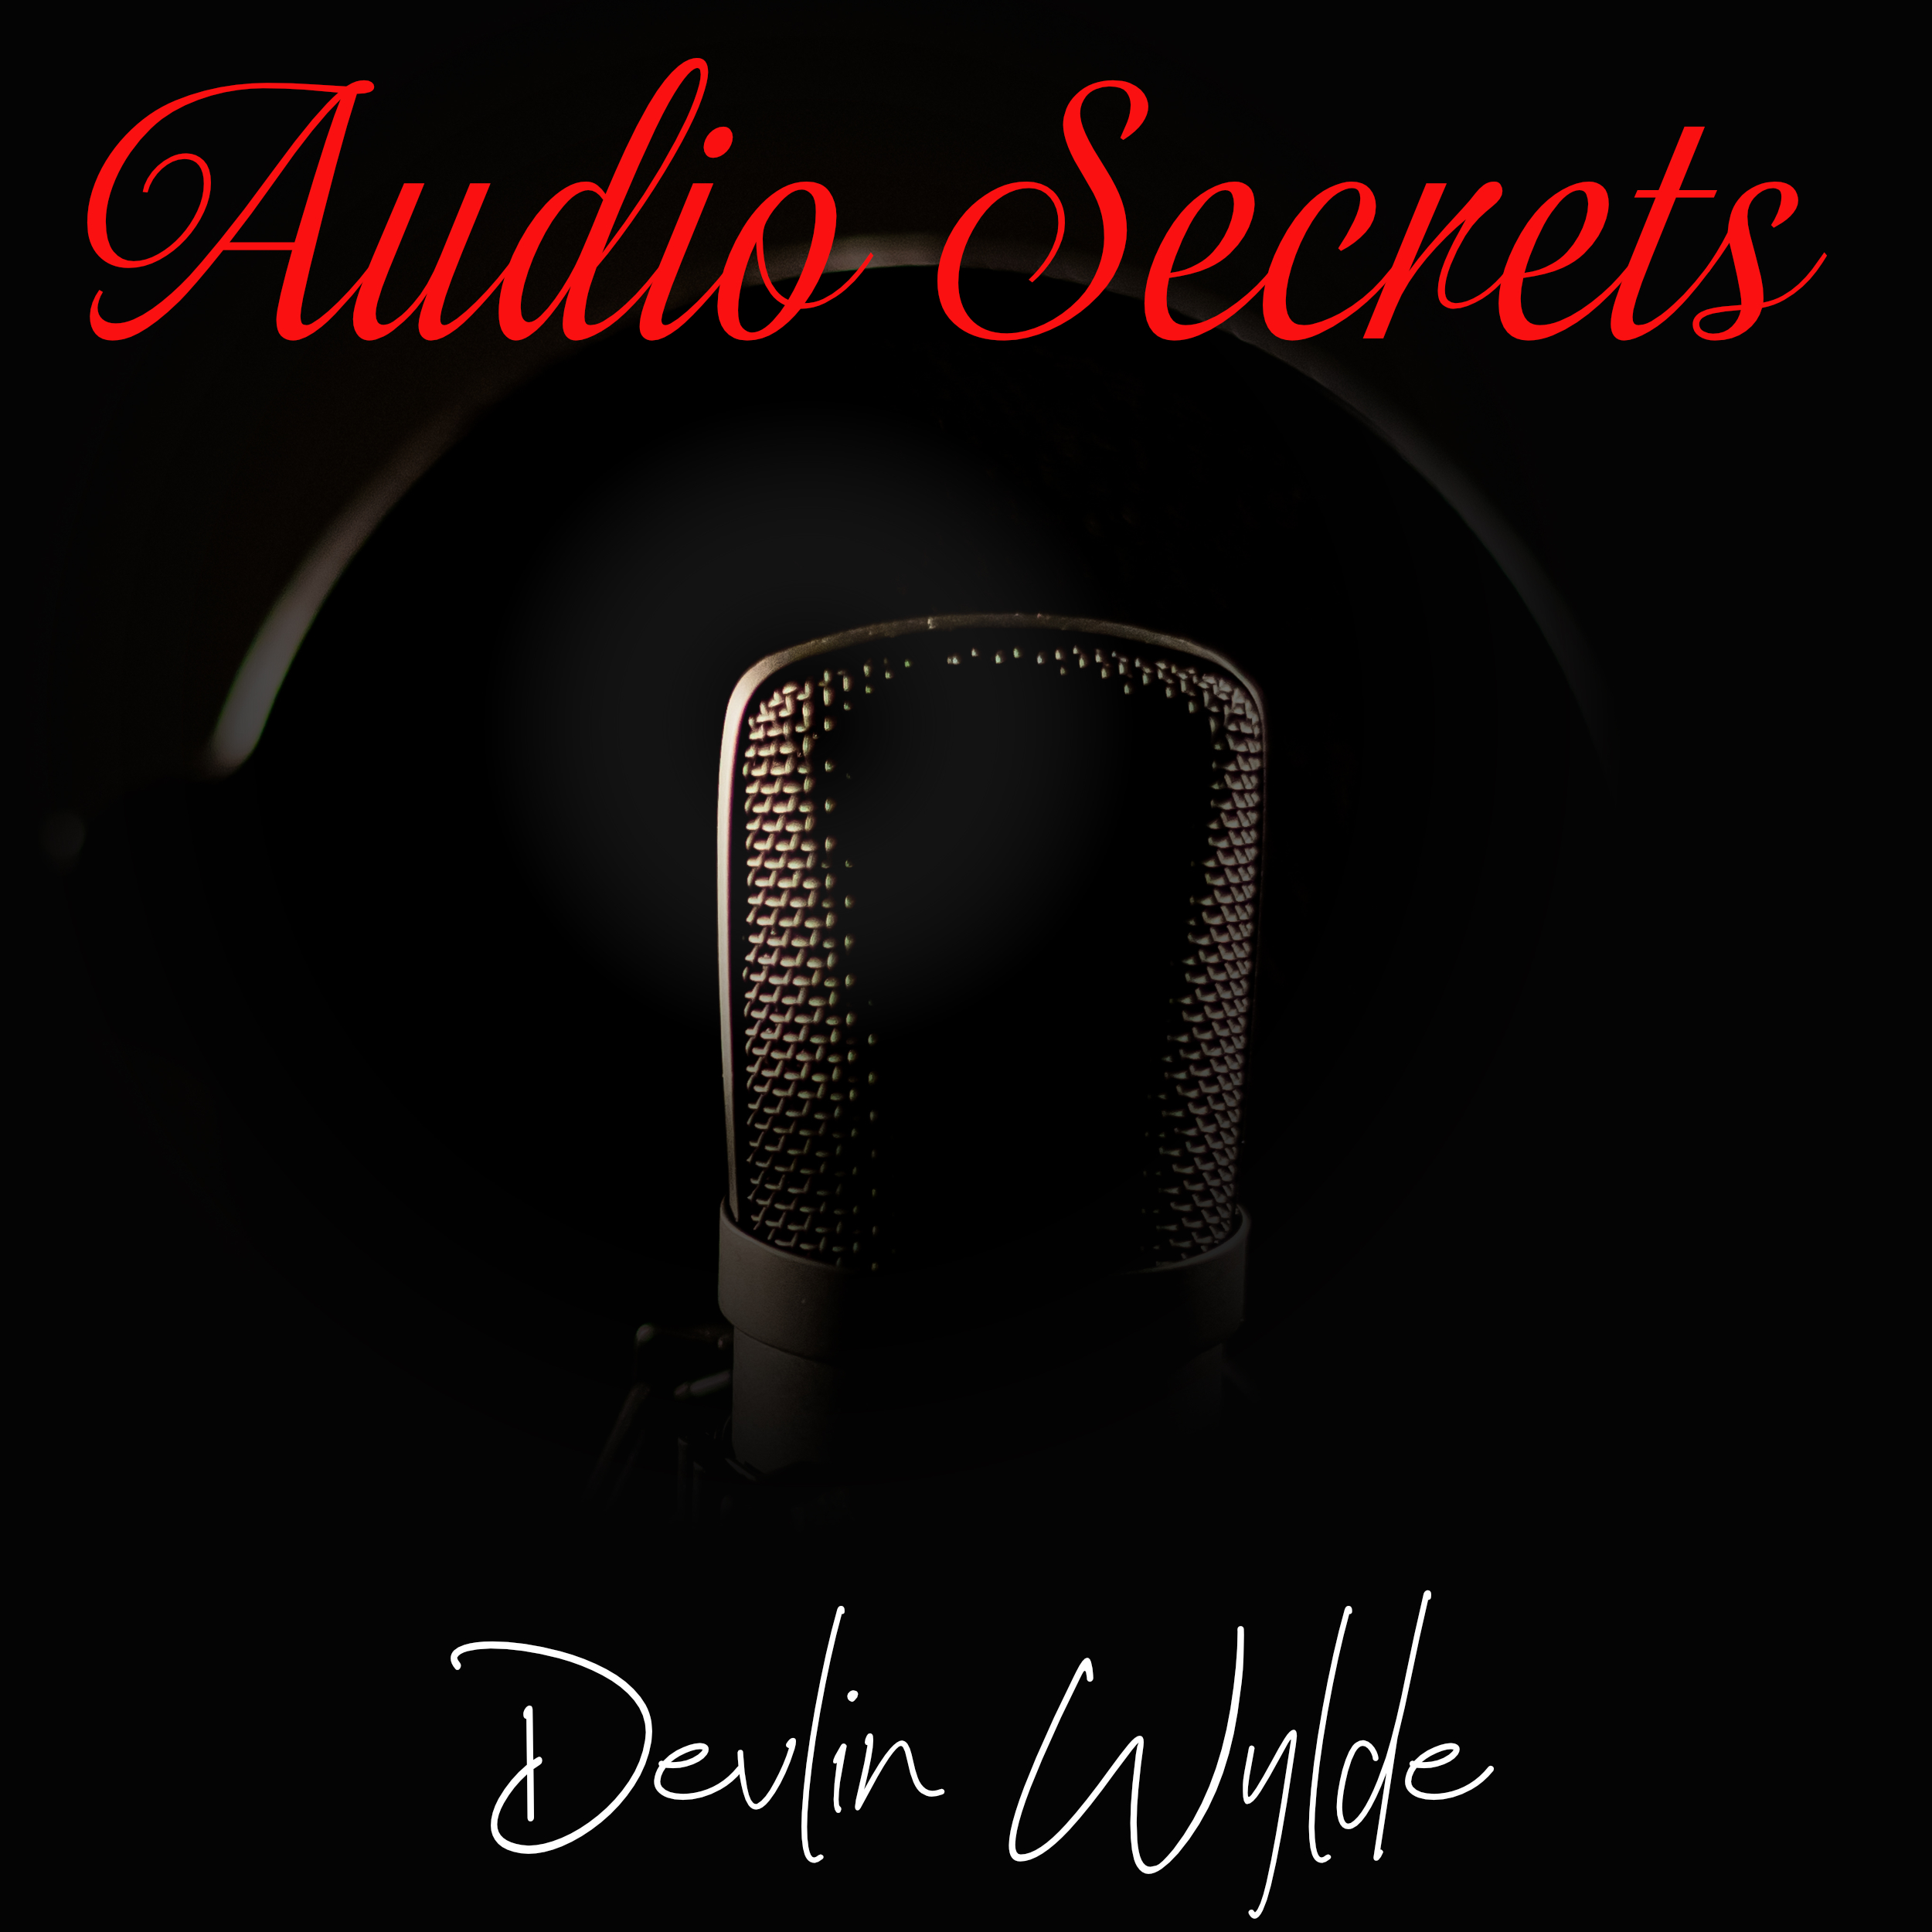 Audiobook narration - A tale of two books